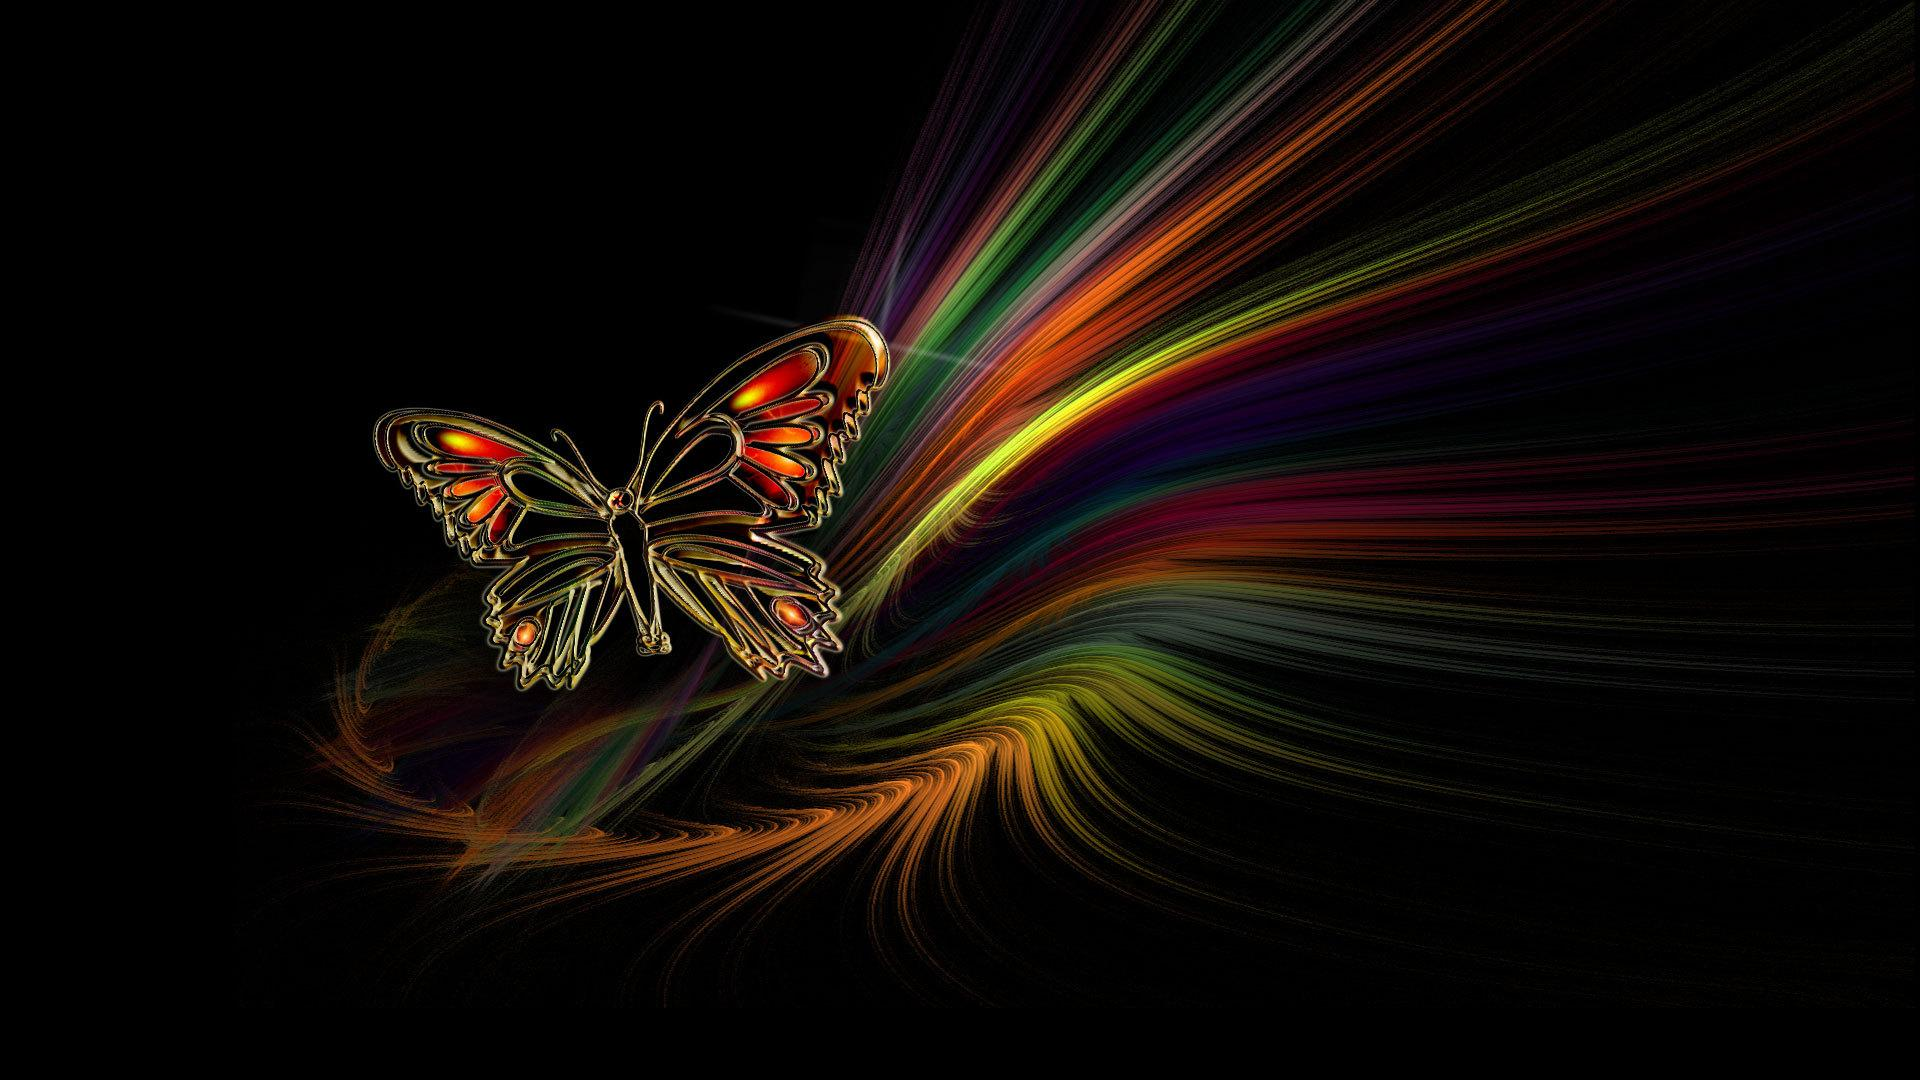 Butterfly Desktop Backgrounds Posted By Samantha Sellers